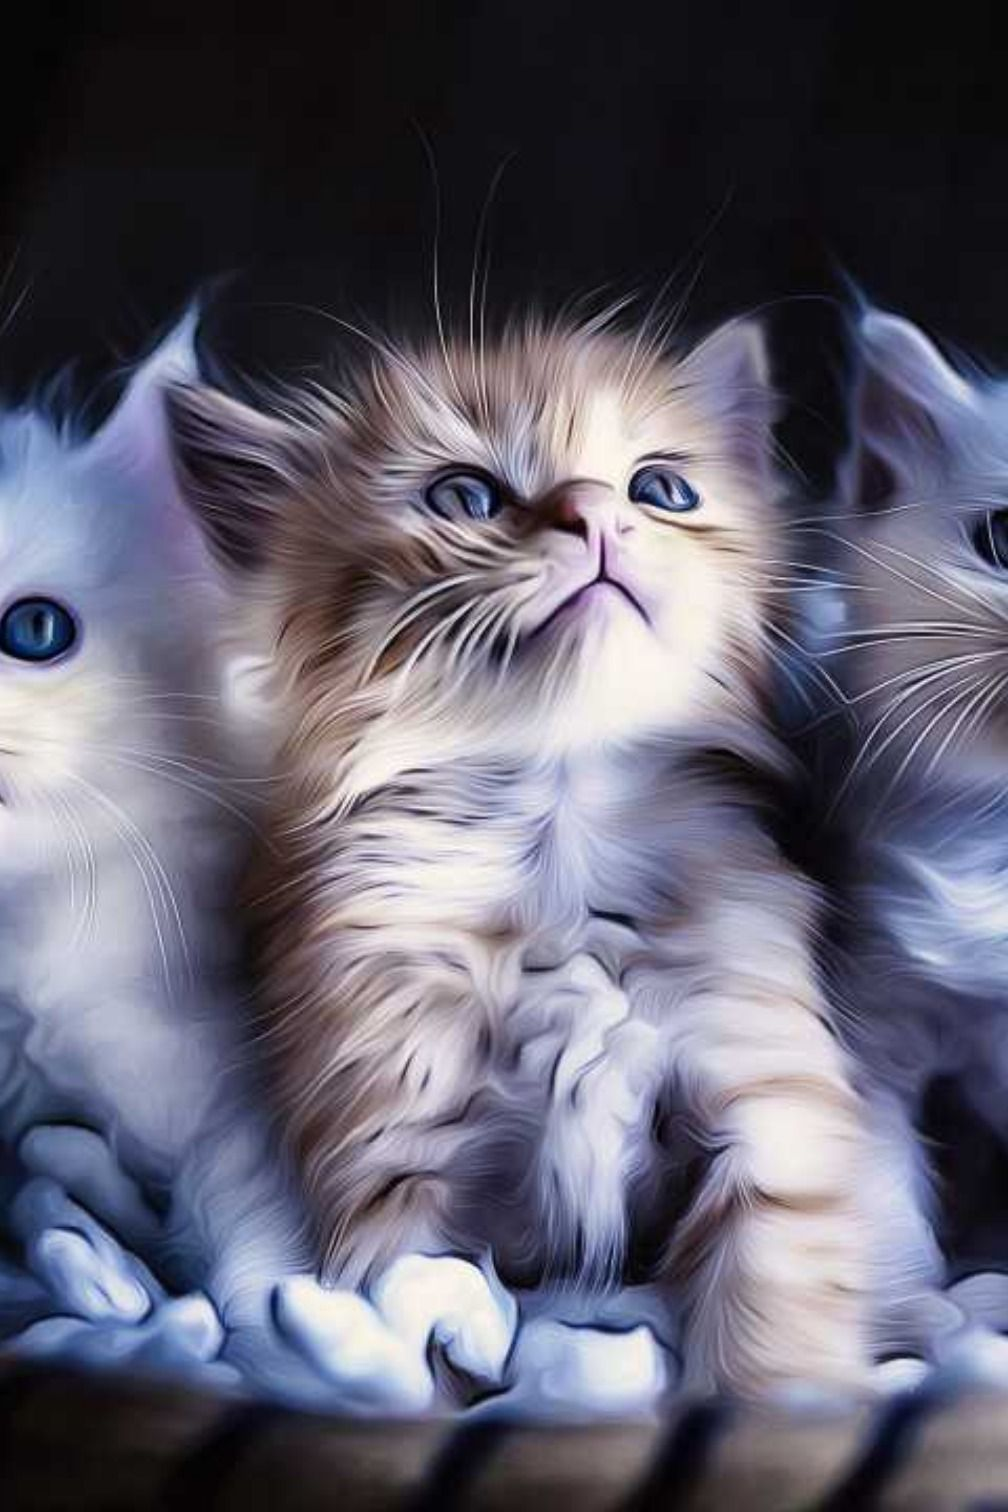 Kitten Cats Cute Babies Animal Adorable Cuteness Photooftheday Beautiful Wonderful Amazing Awesome Hdwall Animals Beautiful Animals So Cute Images